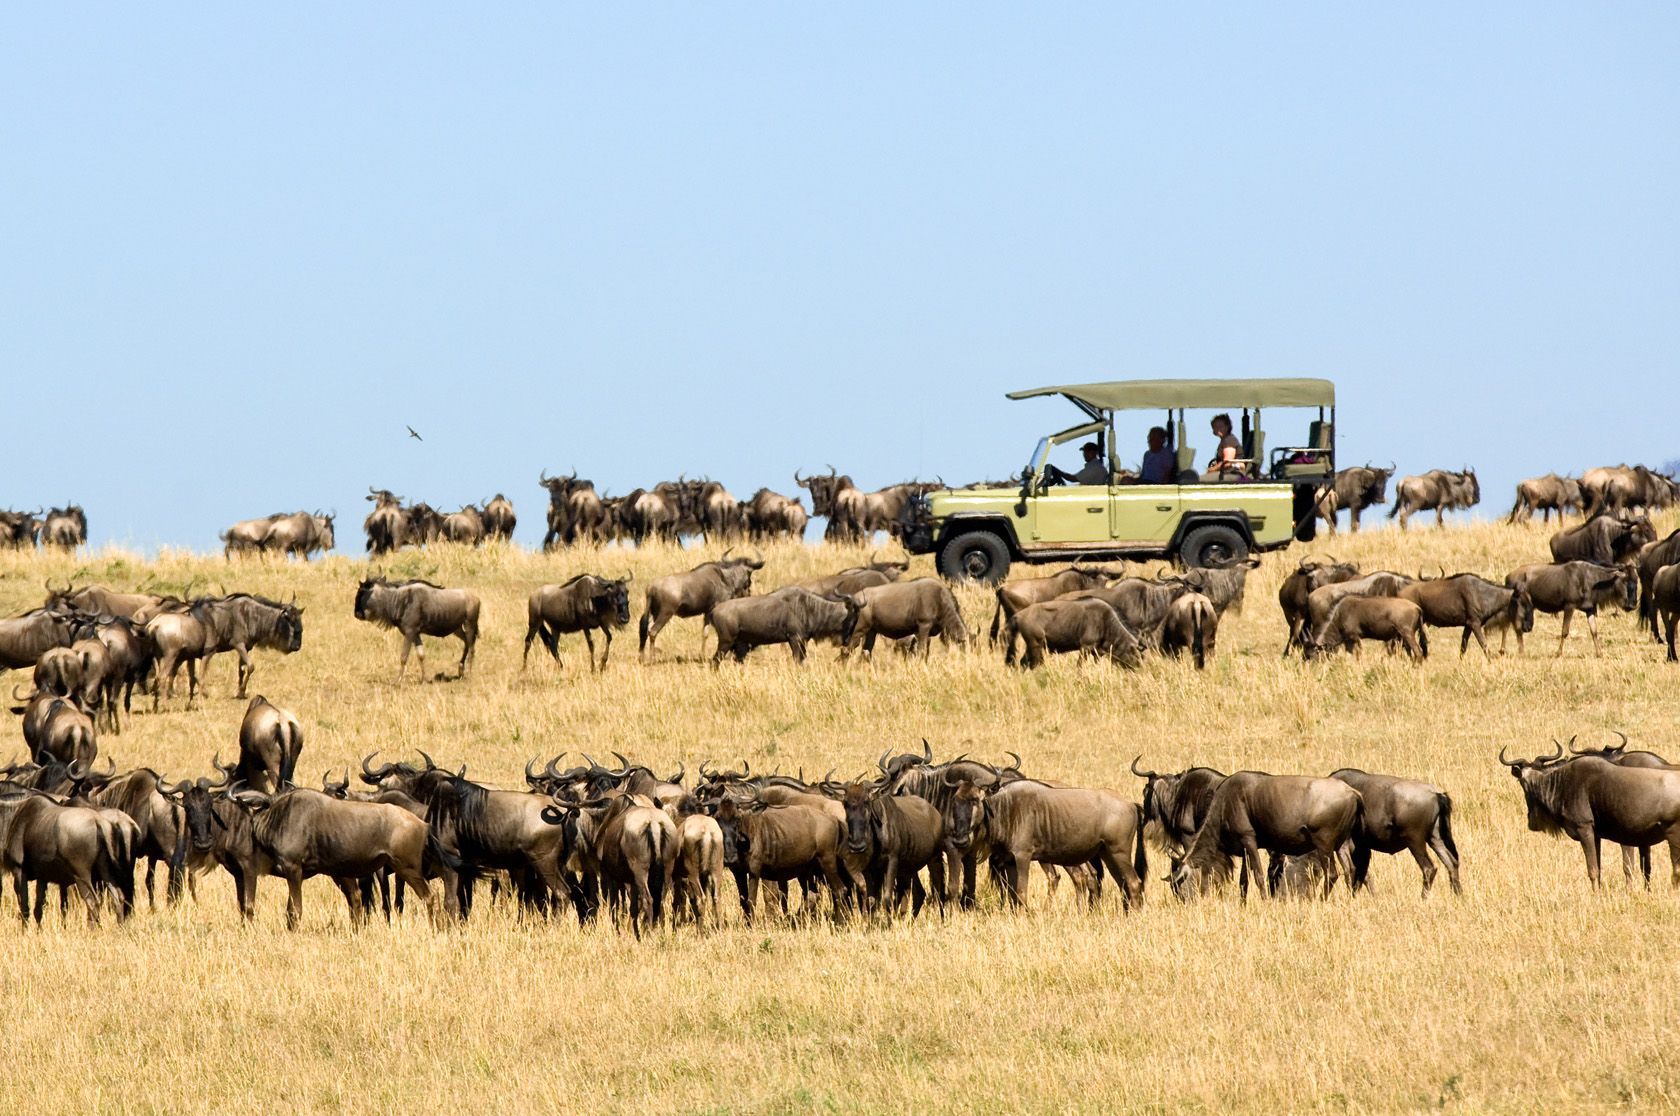 Tanzania: Wildlife Adventure